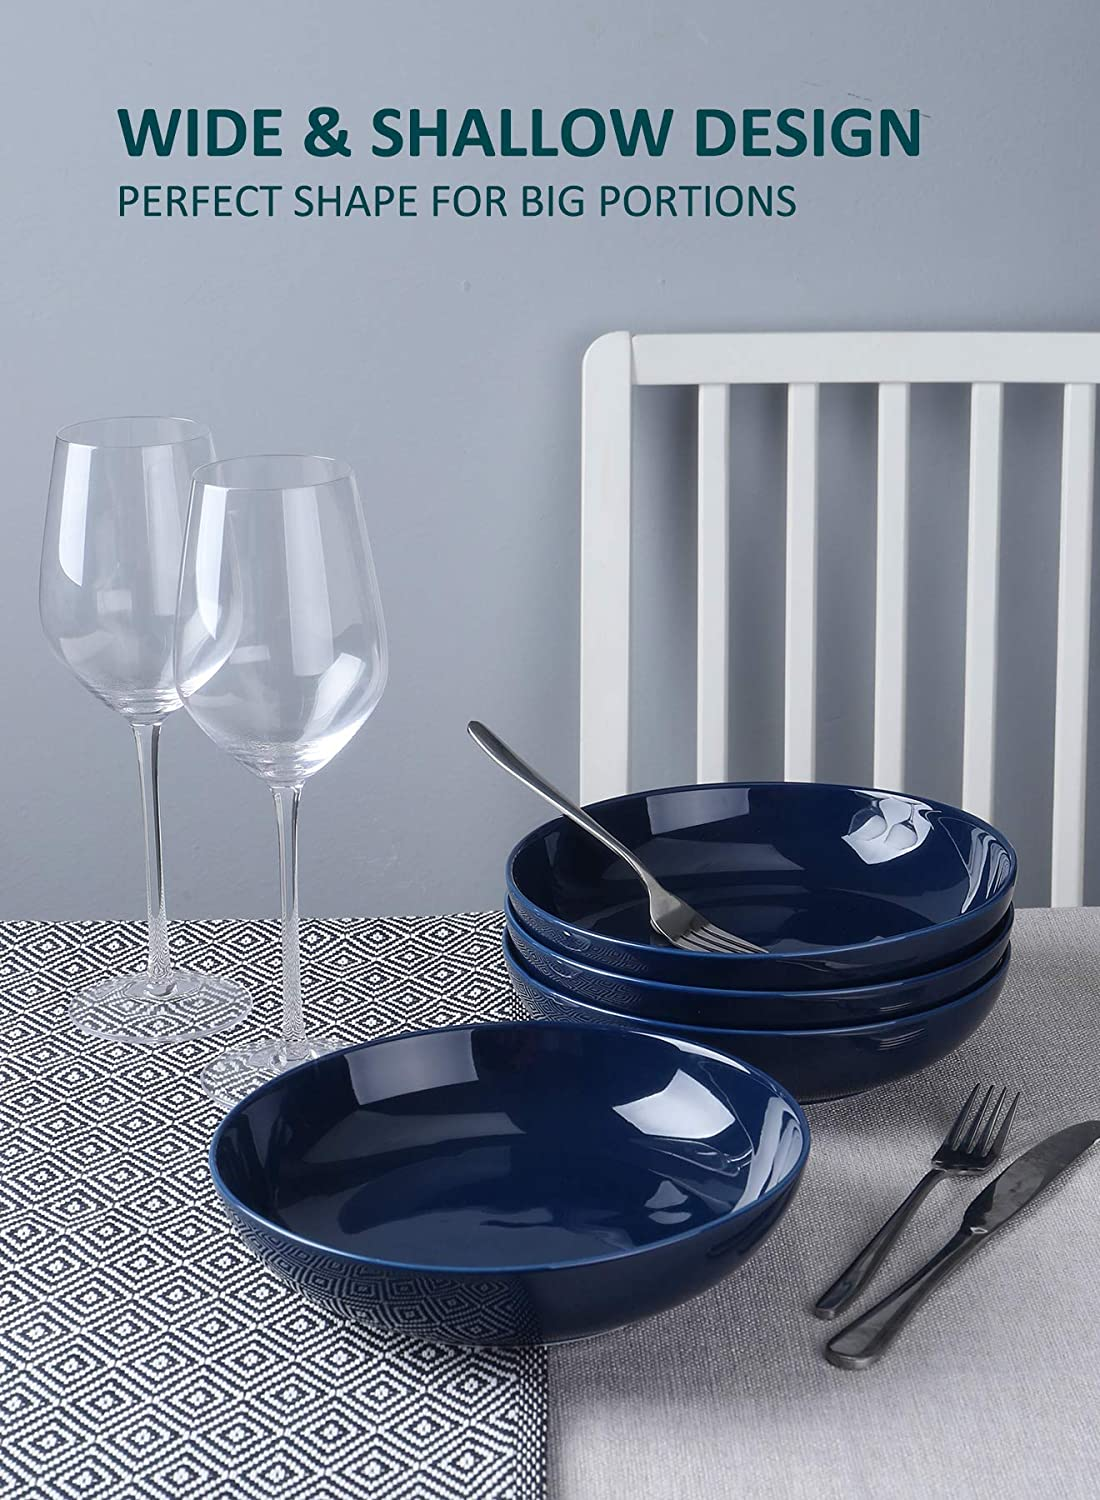 Wide and Shallow Large Porcelain Salad and Pasta Bowls Set of 4-35 Ounce Microwave and Dishwasher Safe Serving Dishes Navy